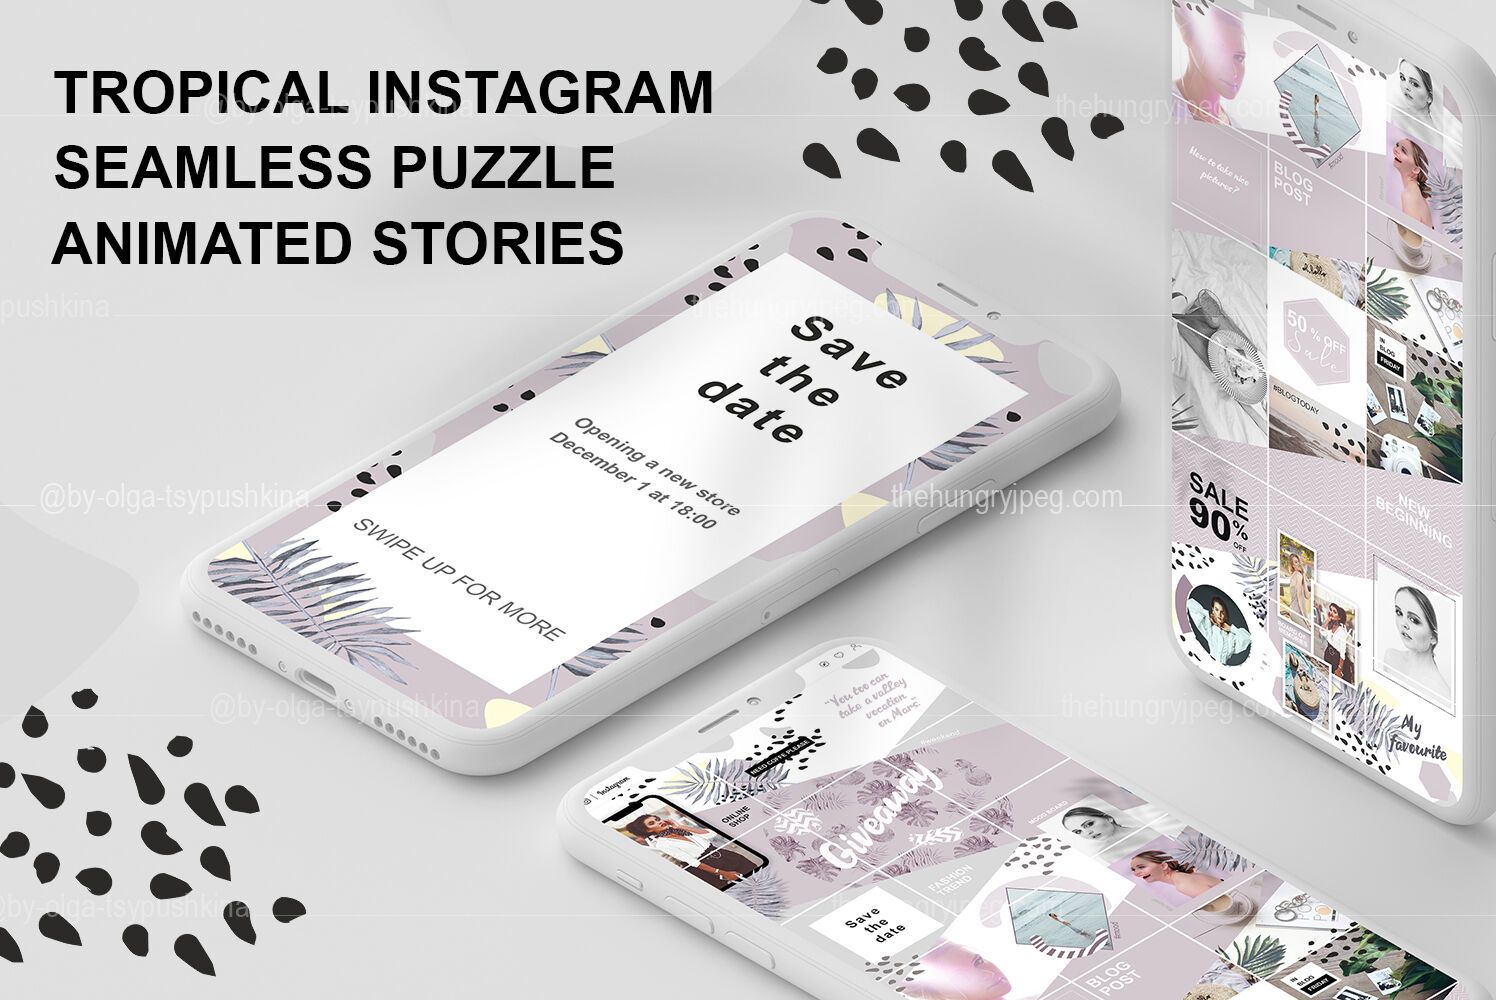 Tropical Instagram Seamless Puzzle And Animated Stories By By Olga